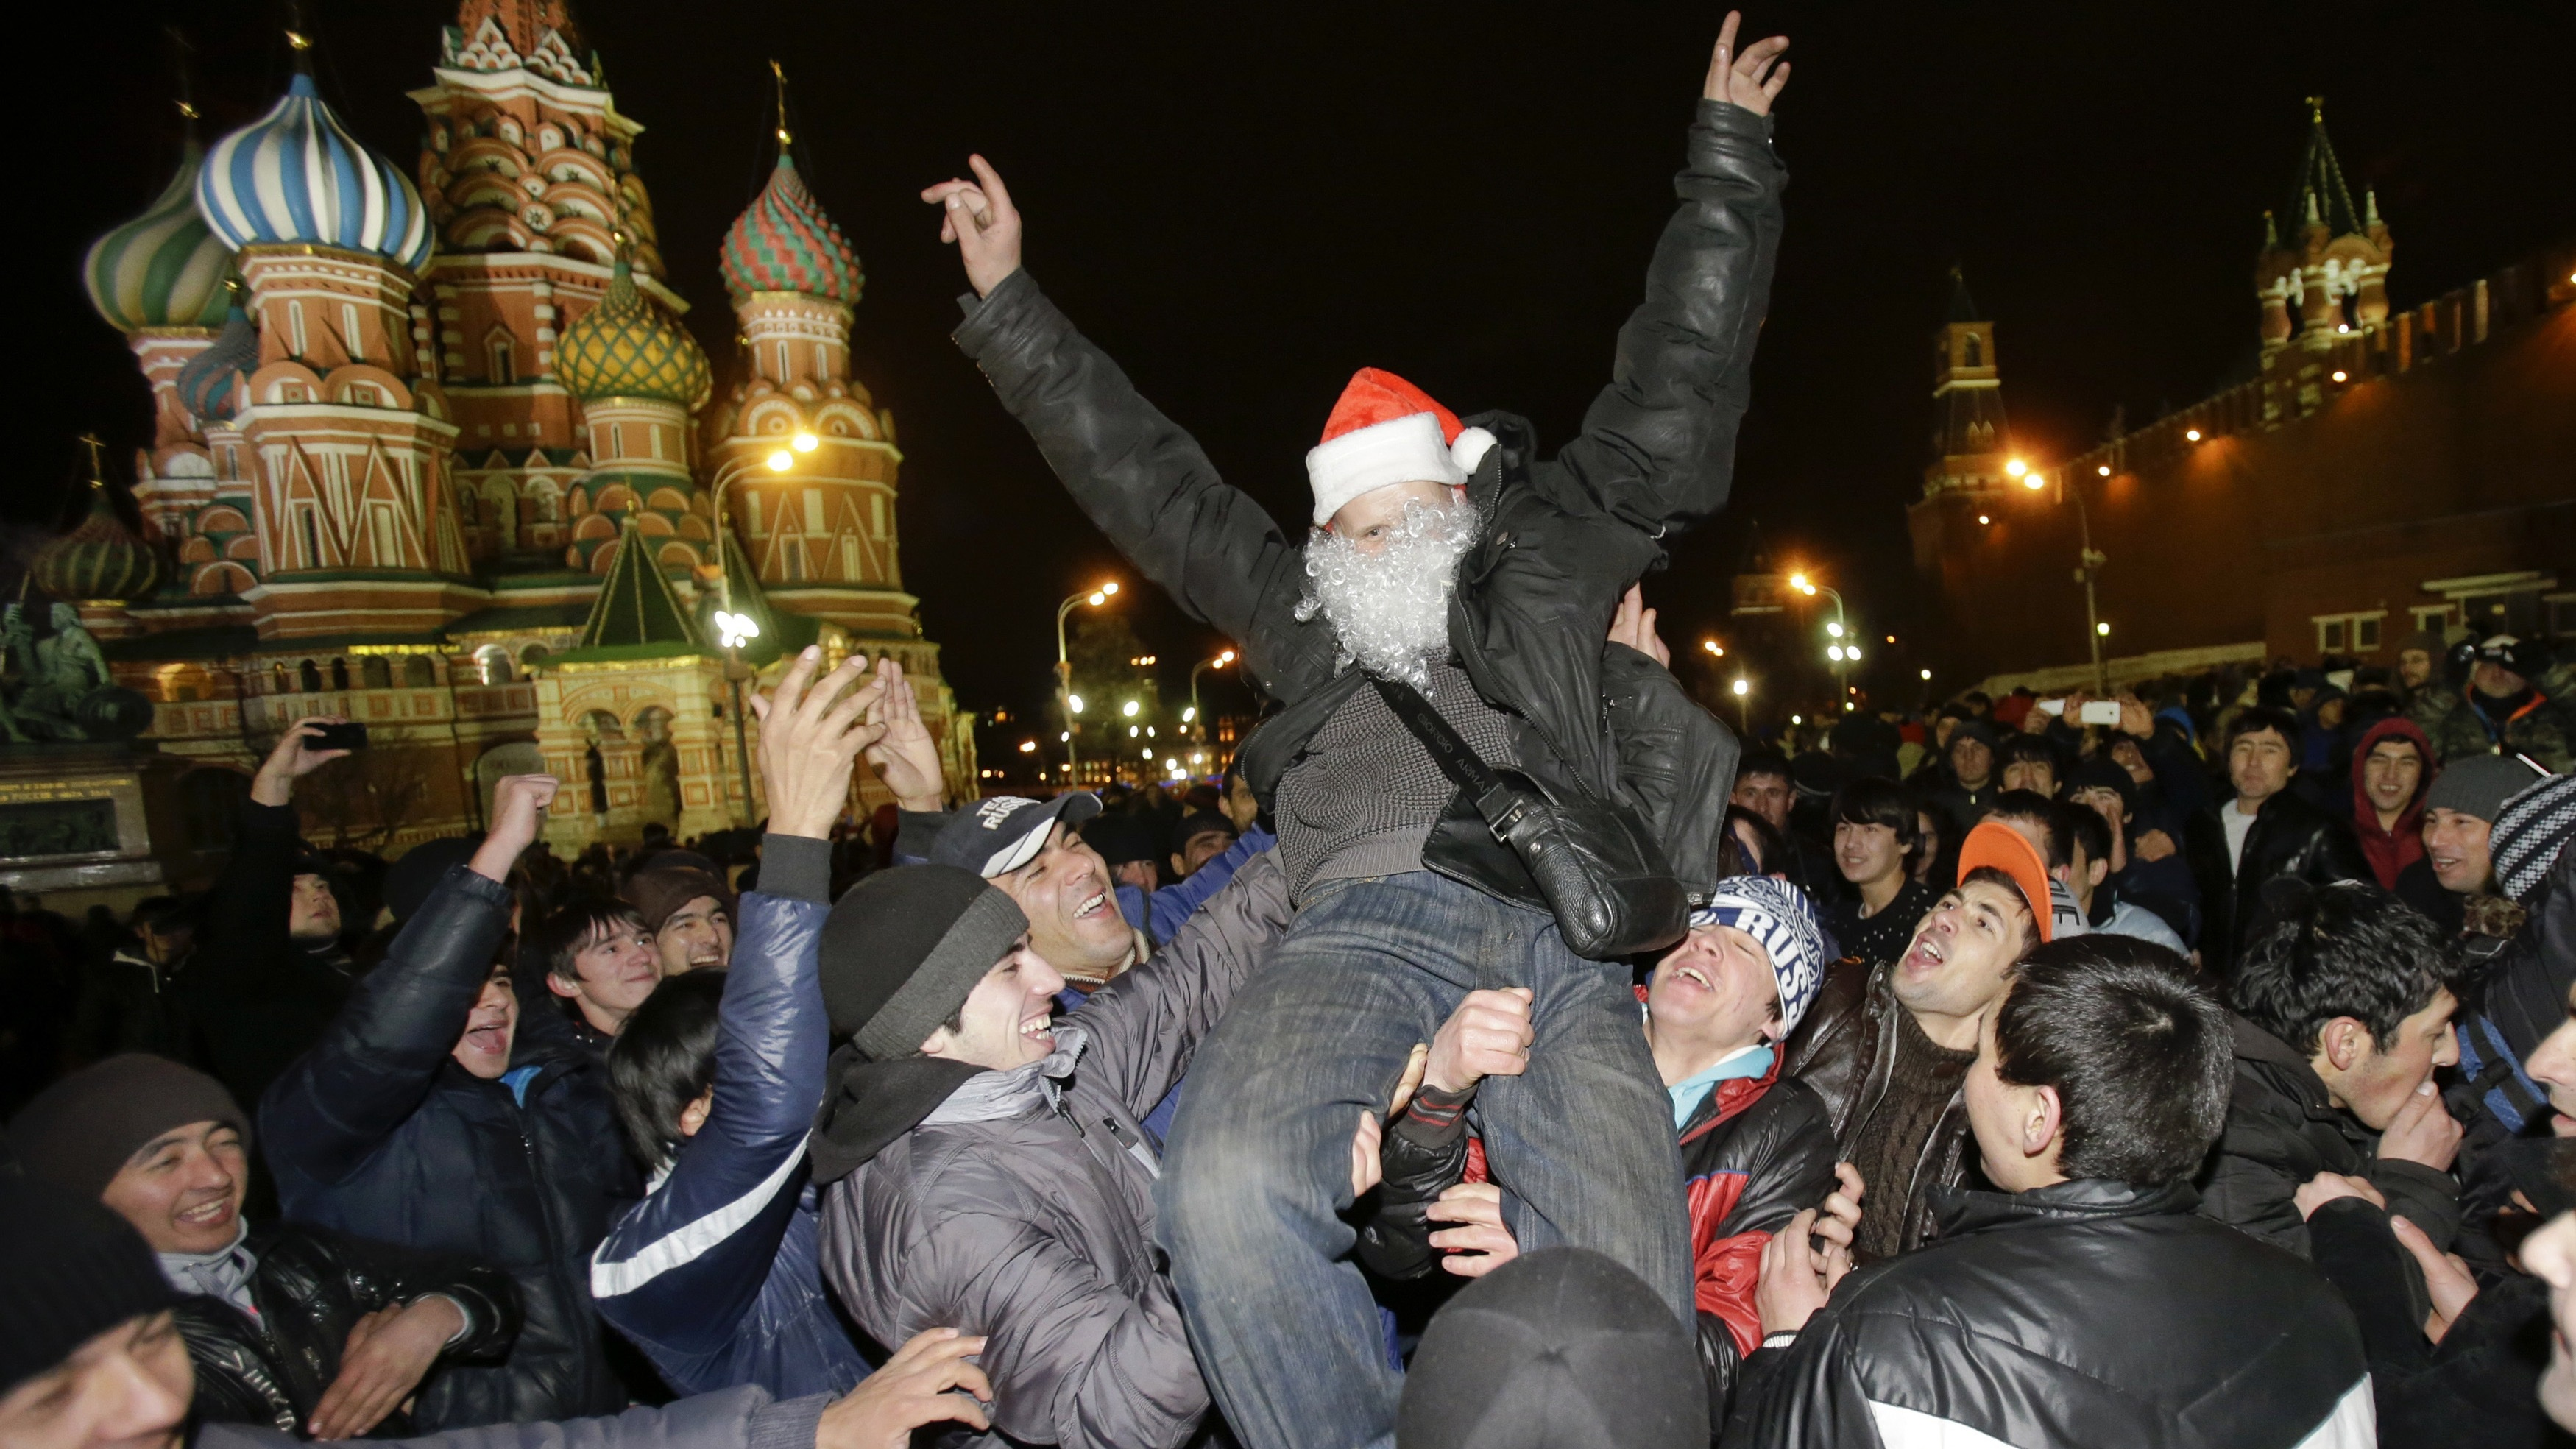 Revellers enjoy the countdown to New Year celebrations in Moscow's Red Square December 31, 2013. REUTERS/Tatyana Makeyeva